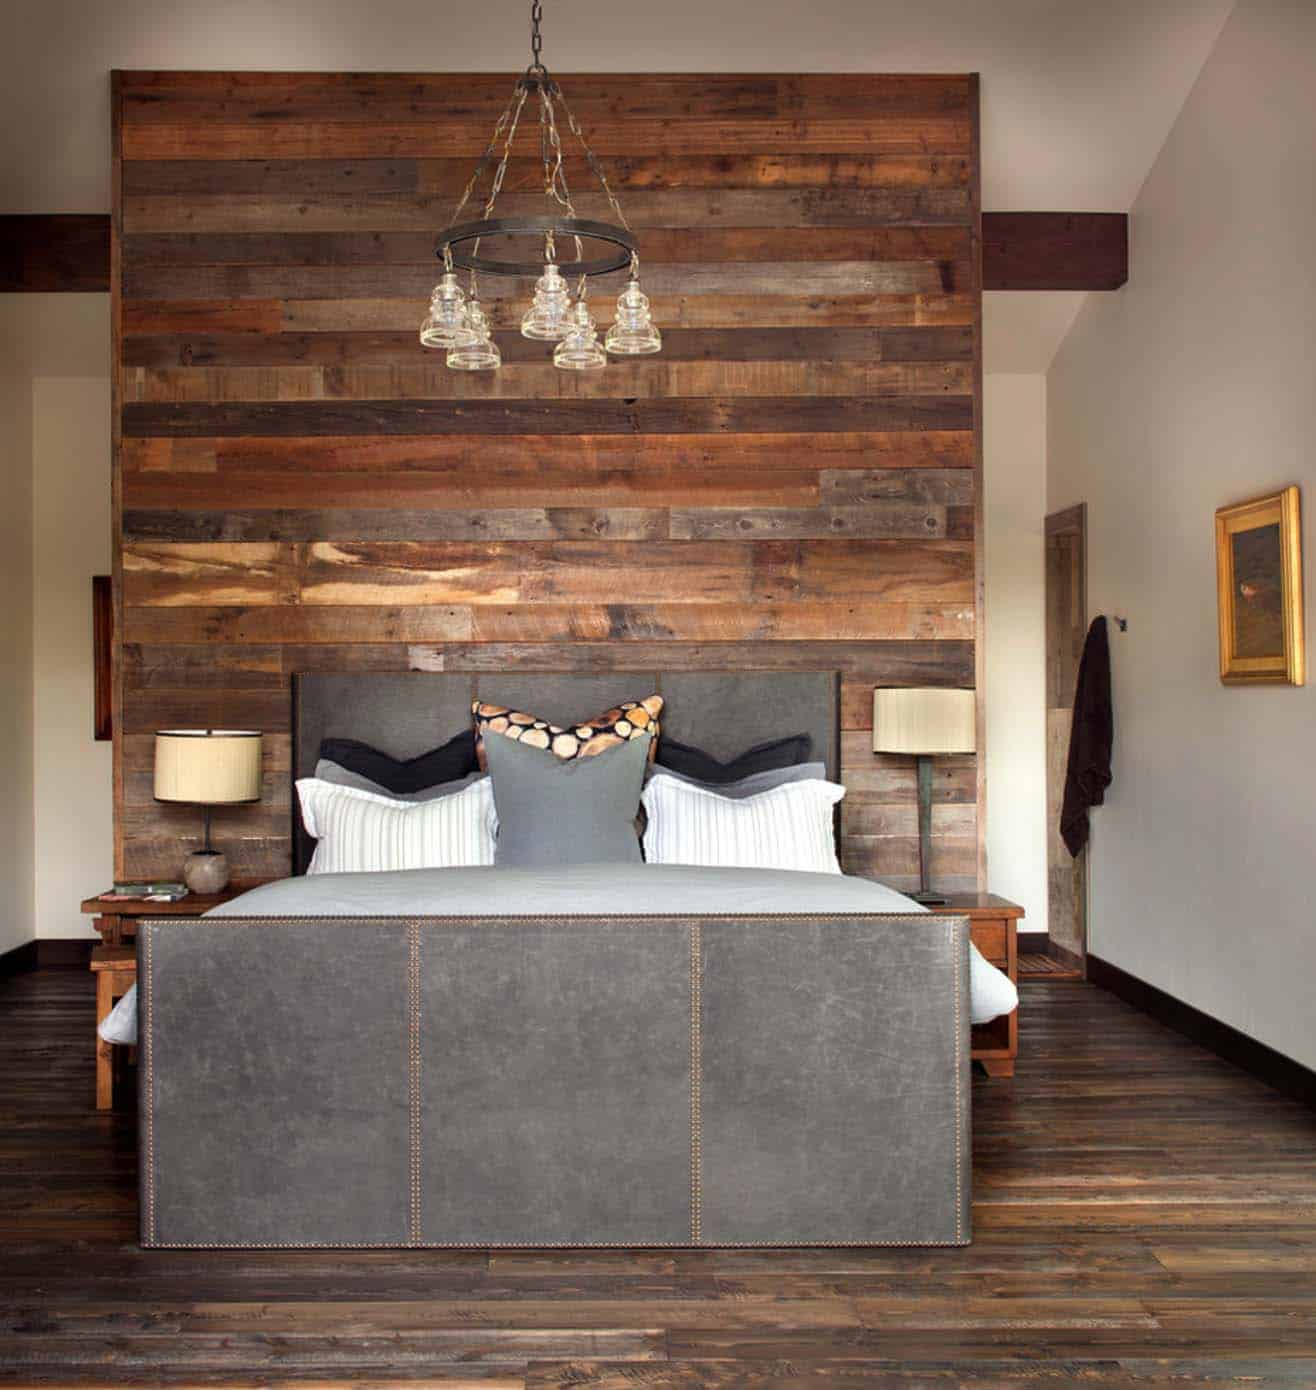 Rustic Interior Design Ideas: Rustic-modern Dwelling Nestled In The Northern Rocky Mountains